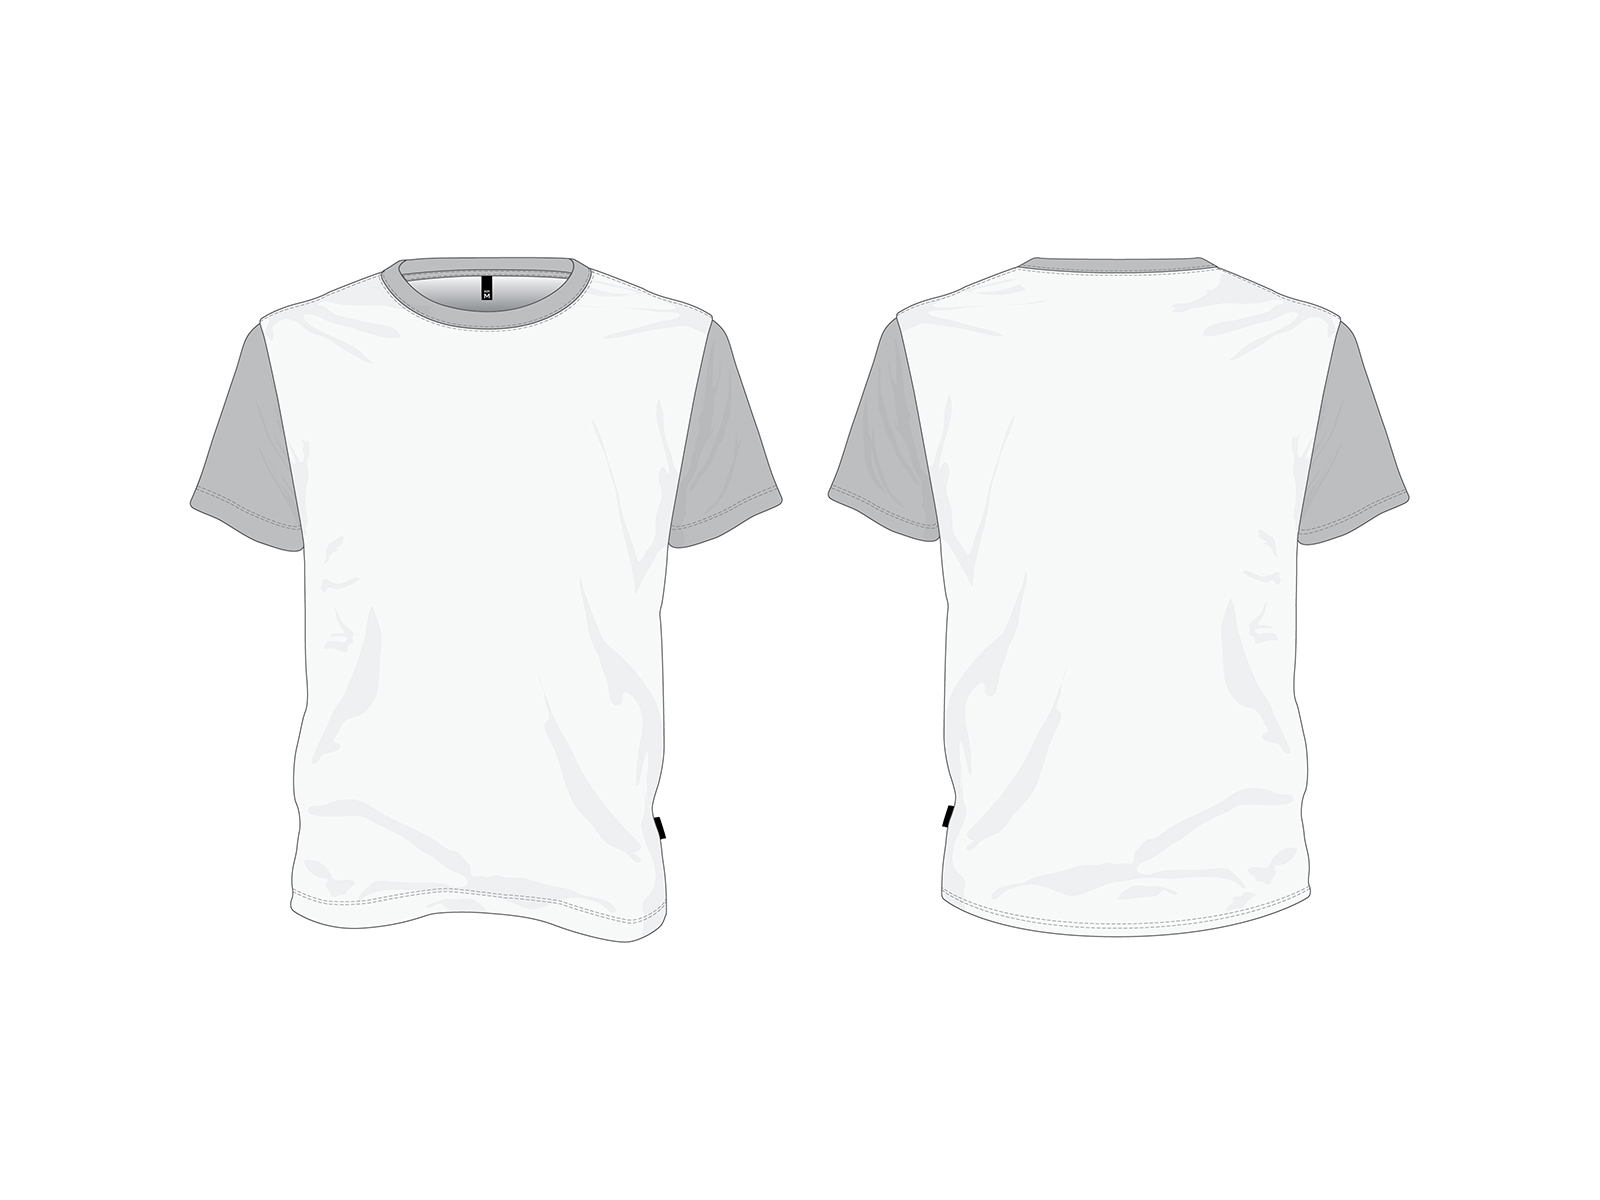 T-Shirt Mockups Free Vector Files